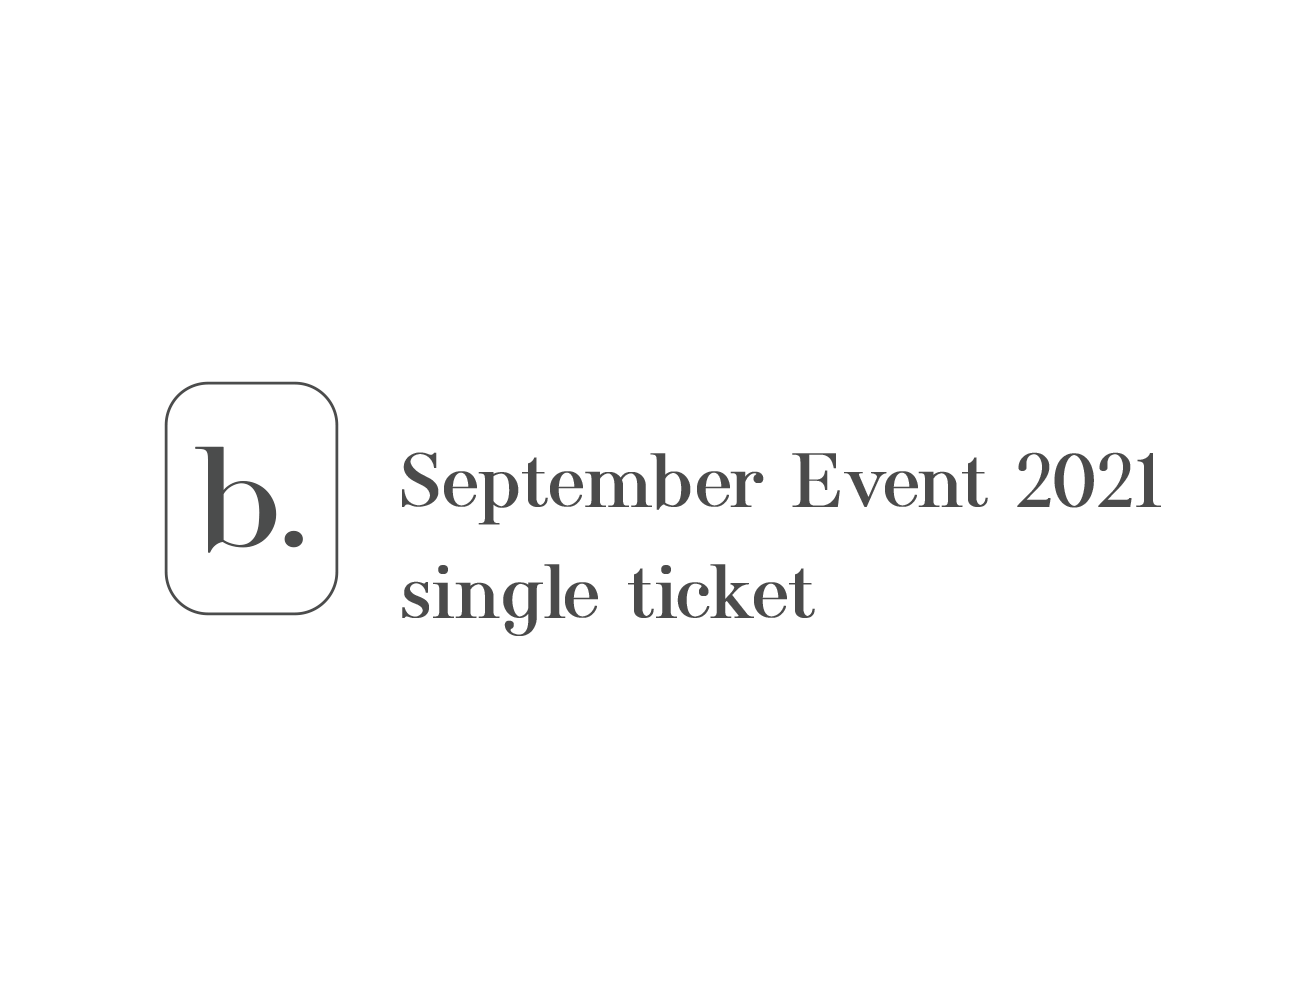 bio 2021 event - single ticket